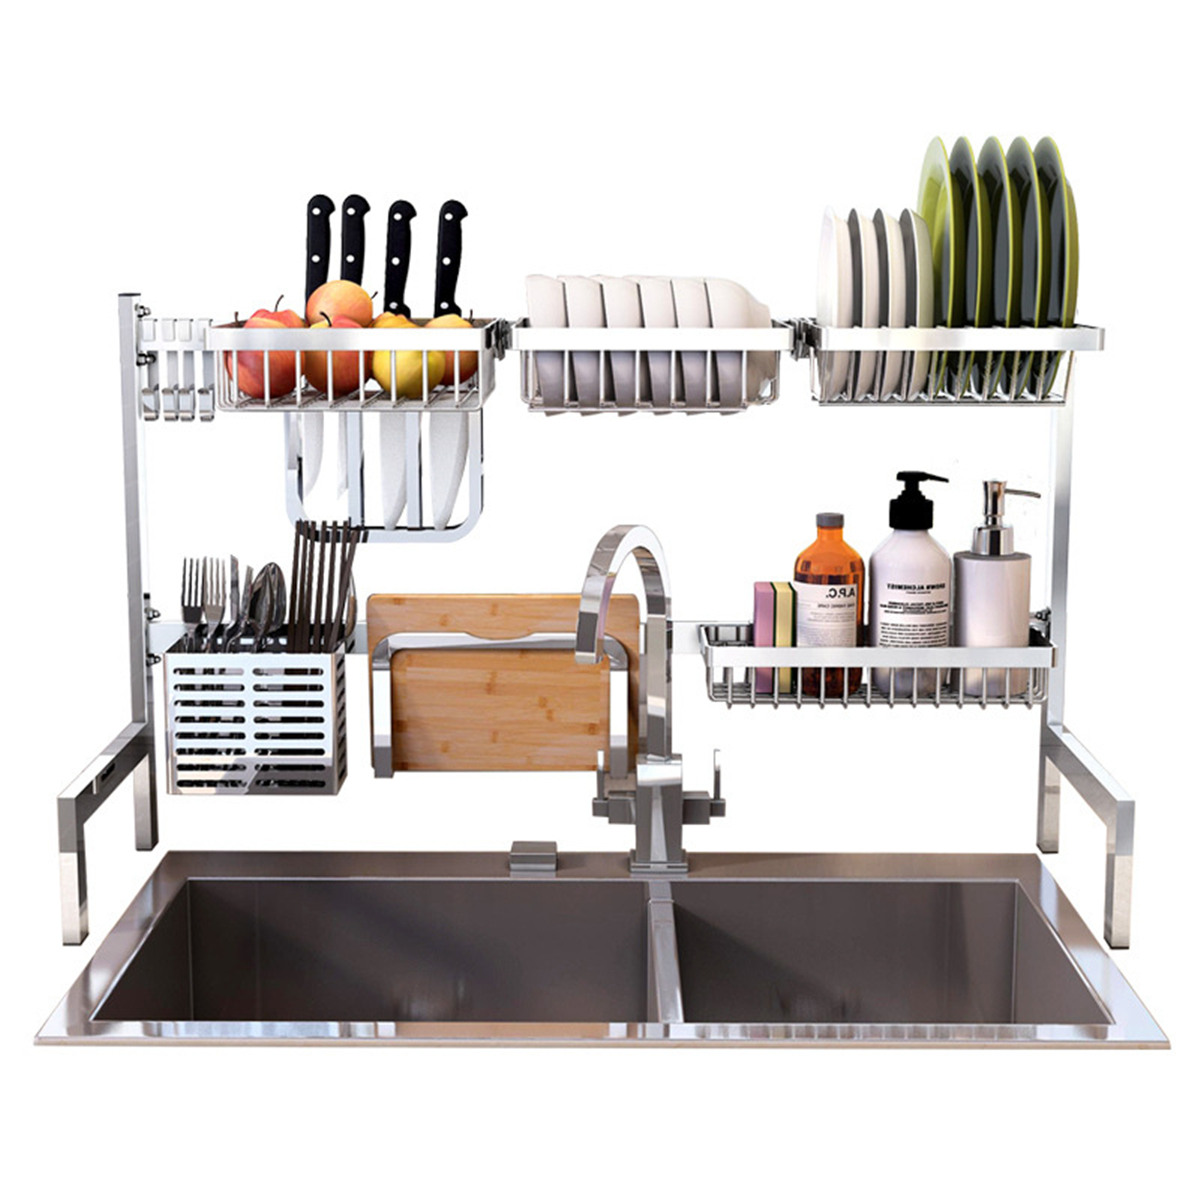 Stainless Steel Kitchen Shelf Rack Drying Drain Storage Holders Plate Dish Rack Kitchen Storage Rack